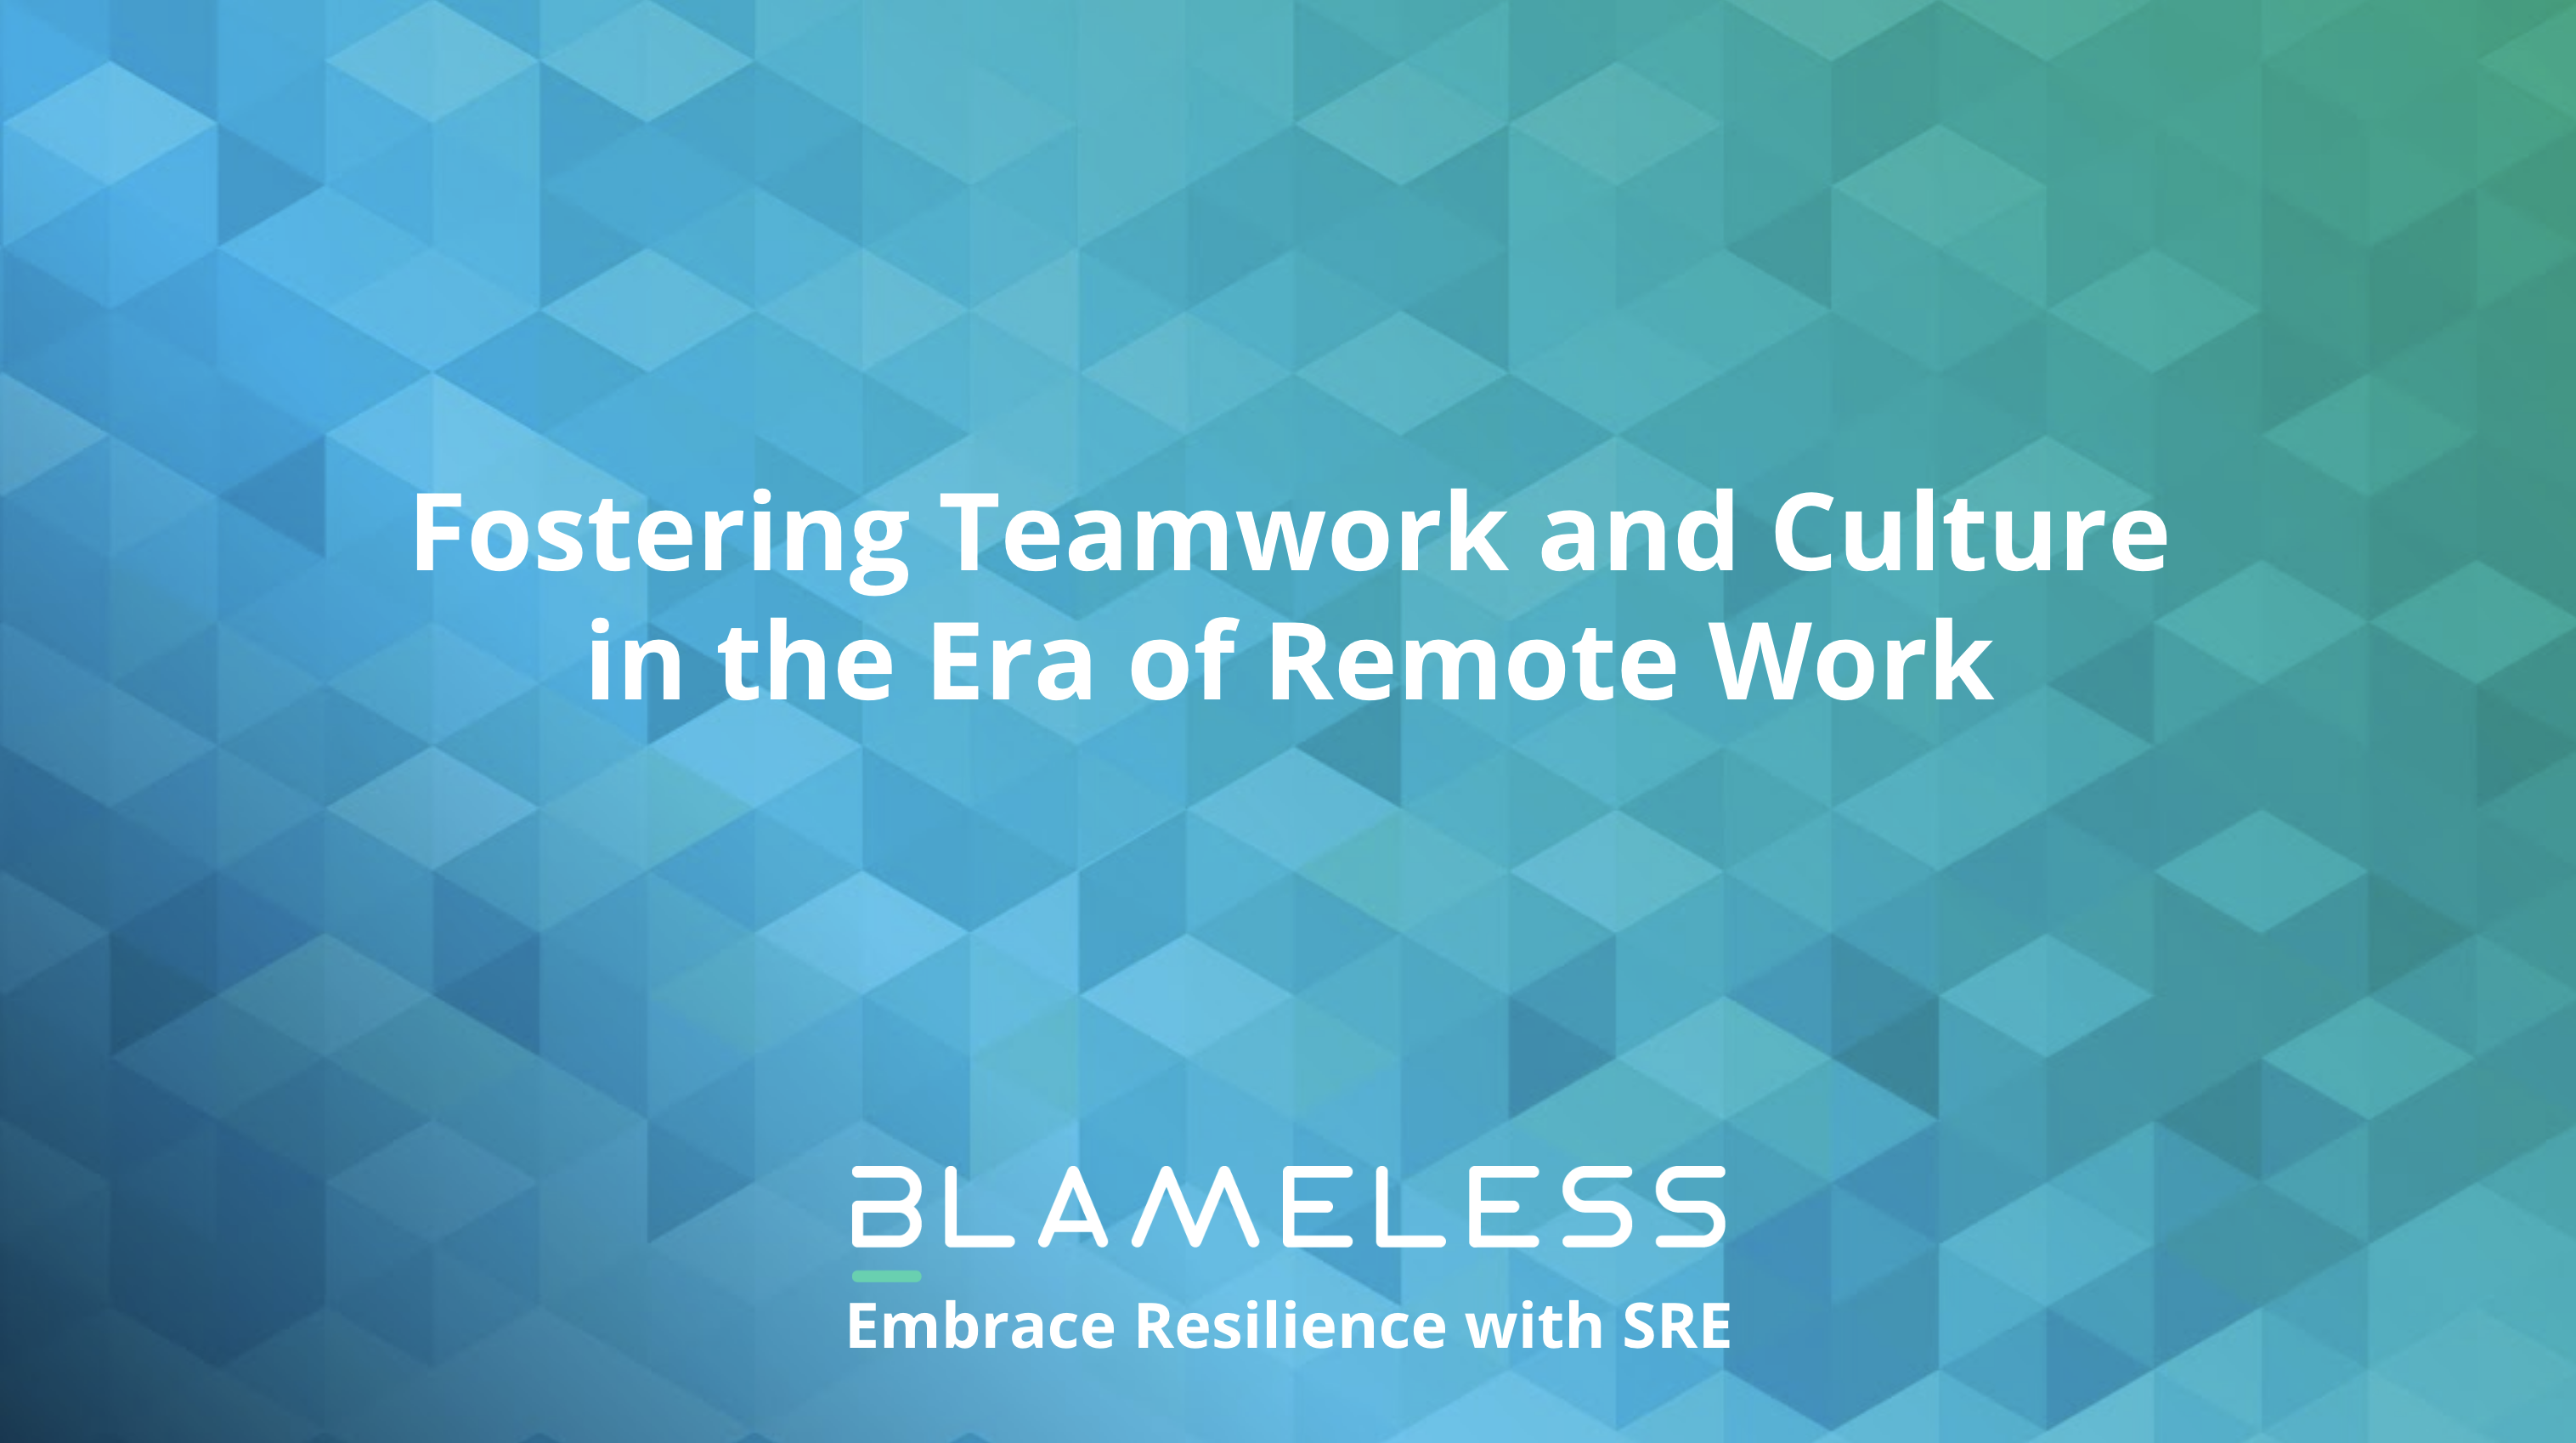 Fostering Teamwork and Culture in the Era of Remote Work